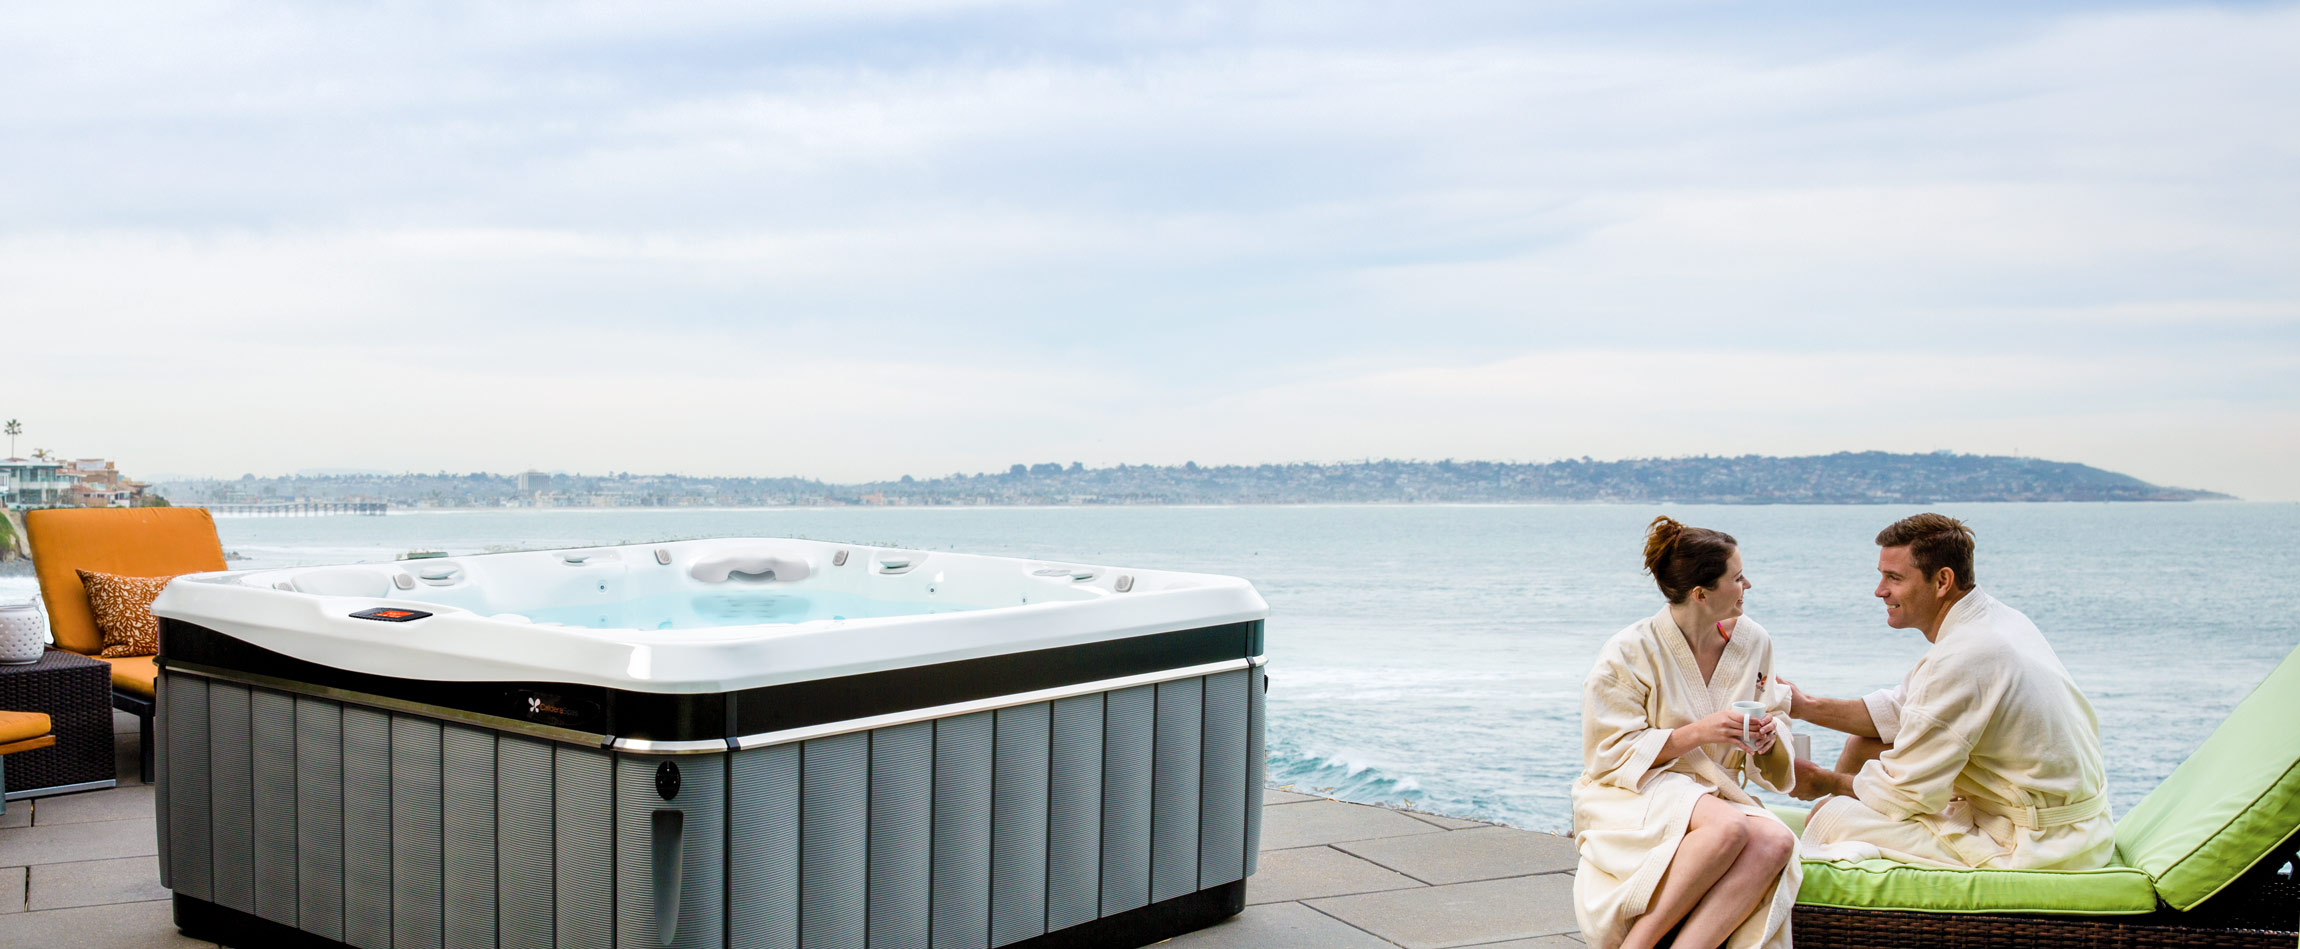 Couple next to hot tub by the sea